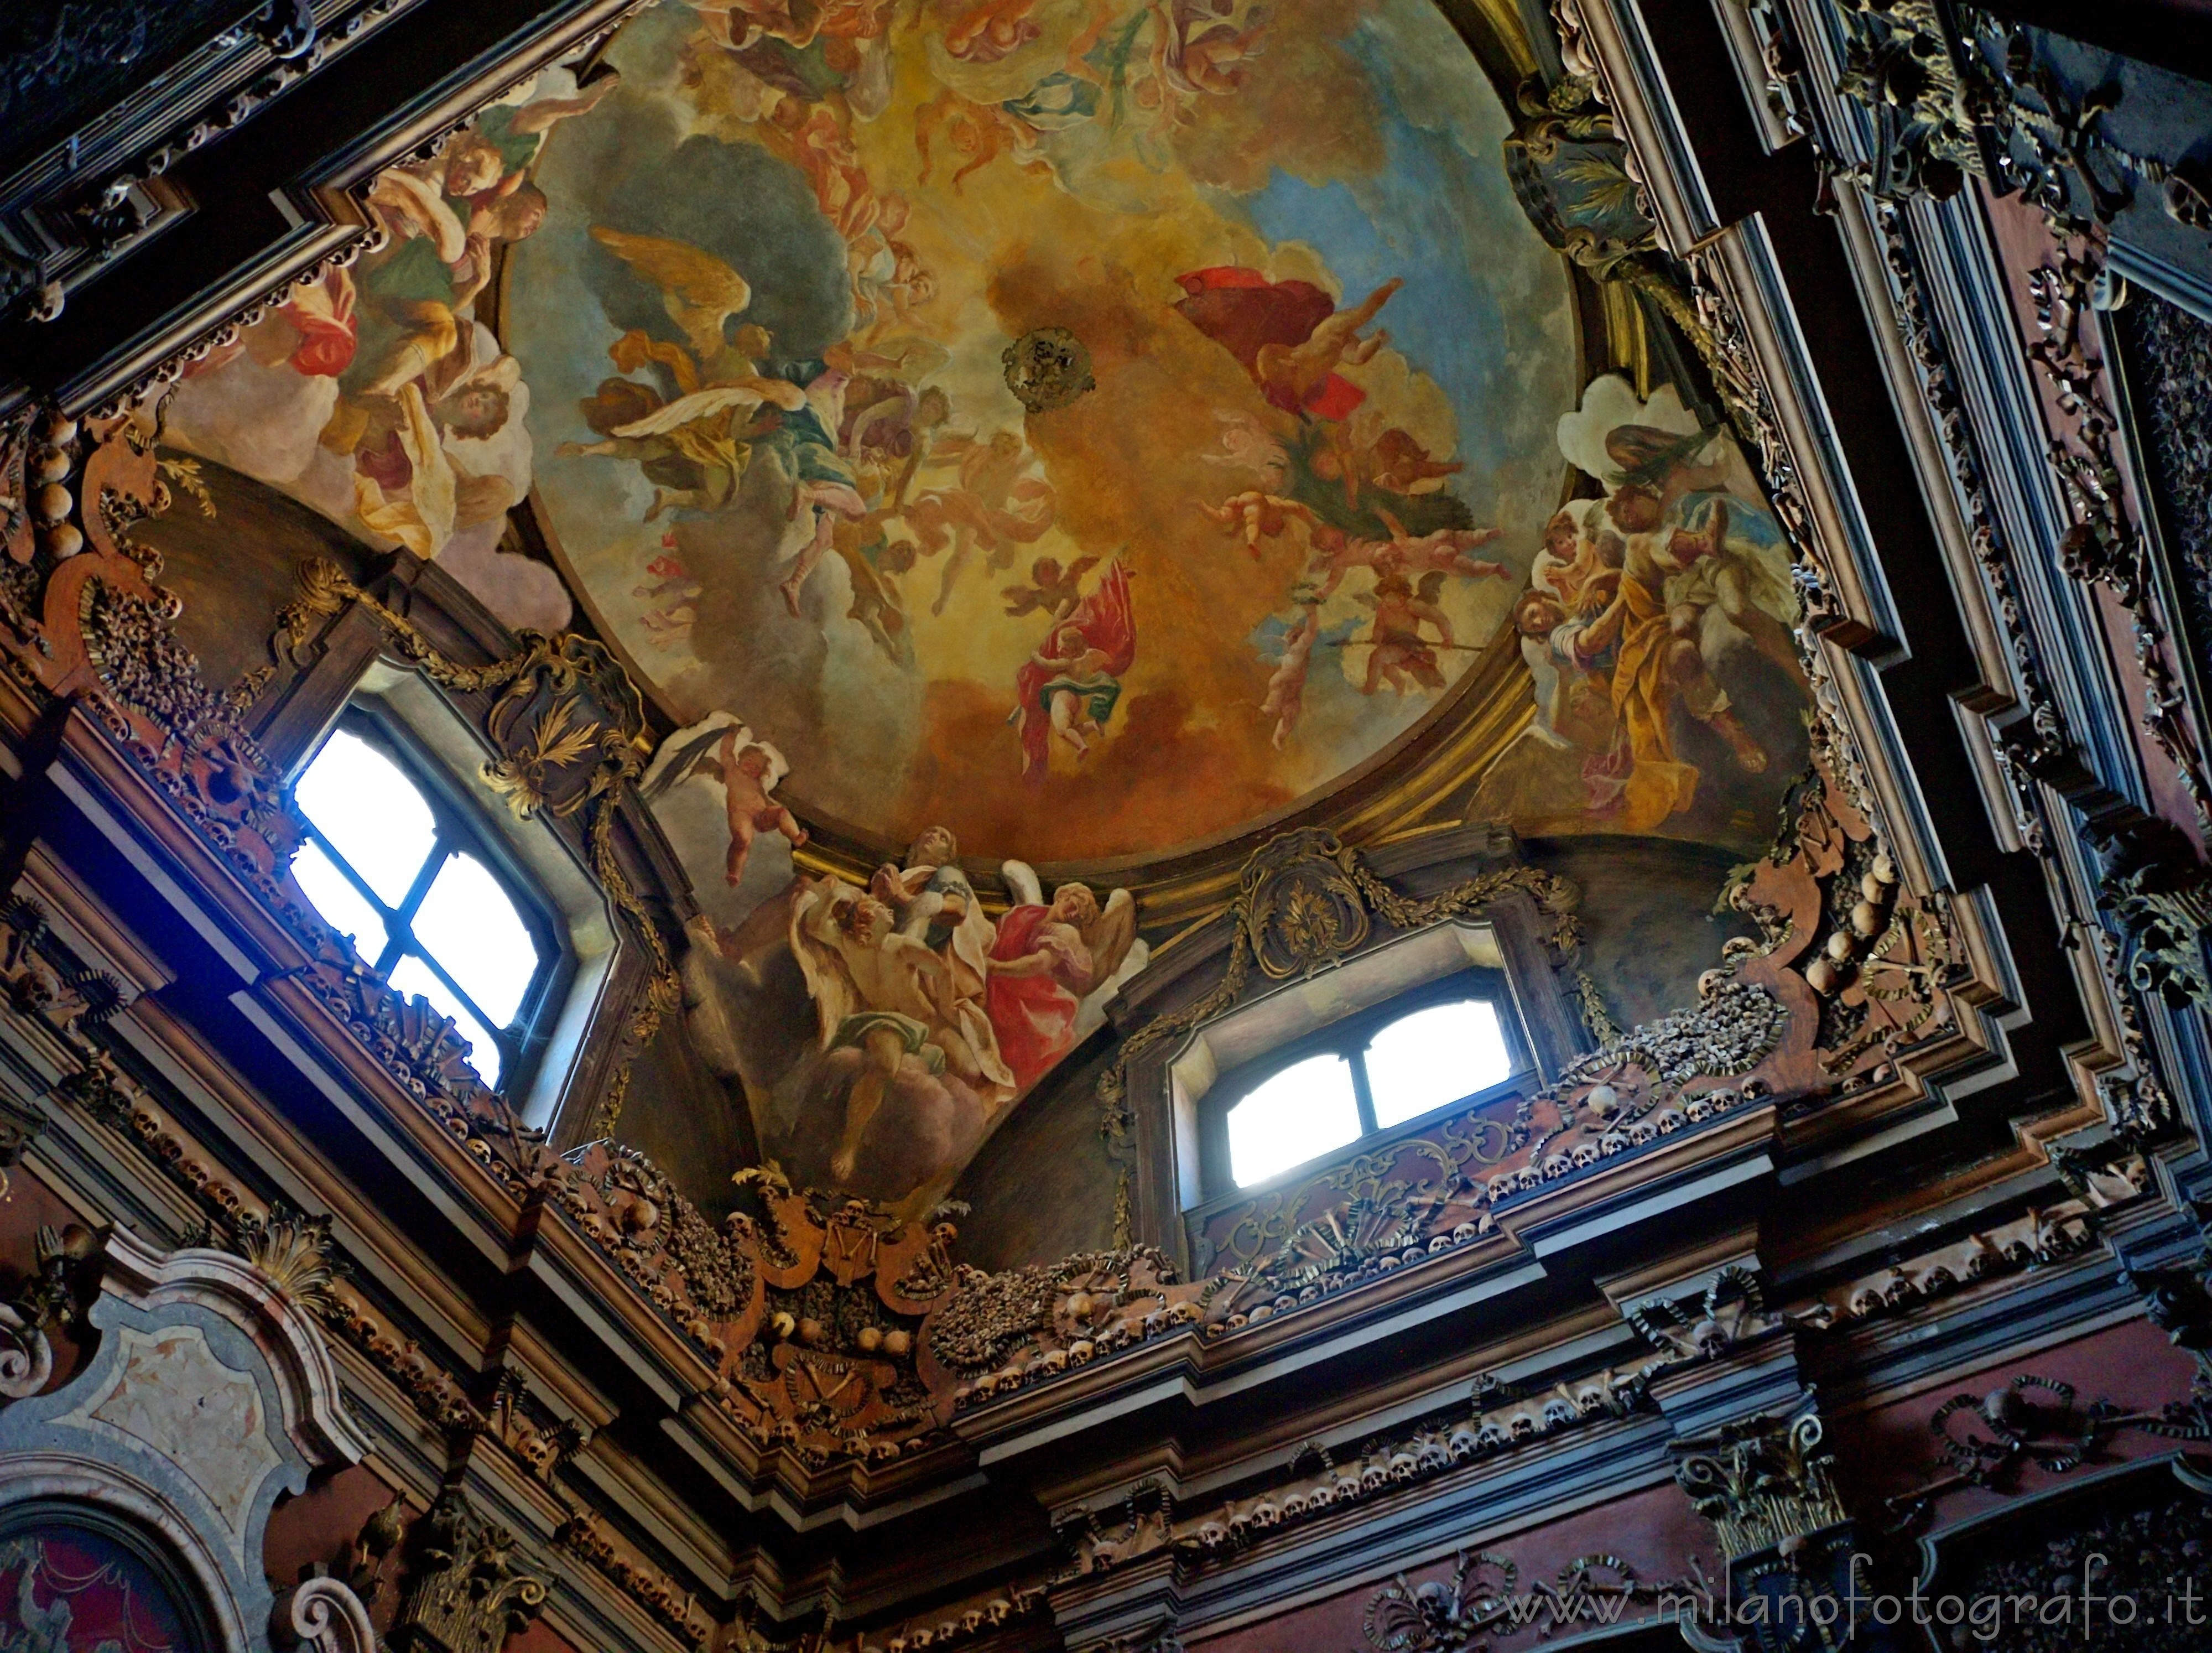 Milan (Italy): Frescos on the voult of the ossuary of di San Bernardino alle Ossa - Milan (Italy)